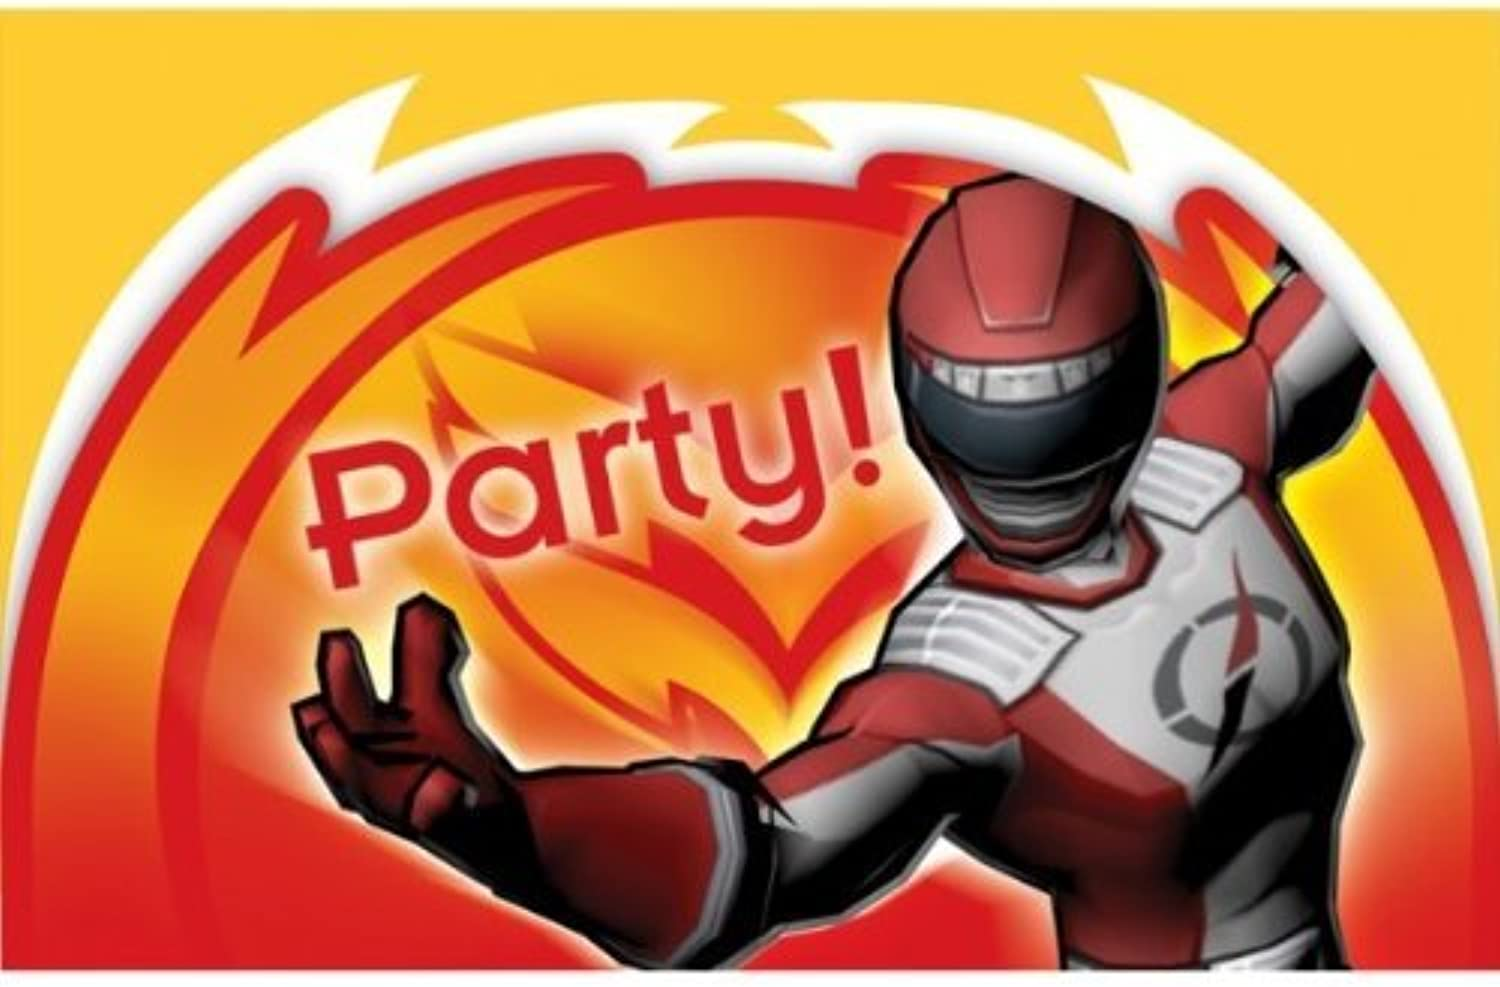 Pack of 6 Power Rangers Super Legends Invitations & Envelopes by partyman